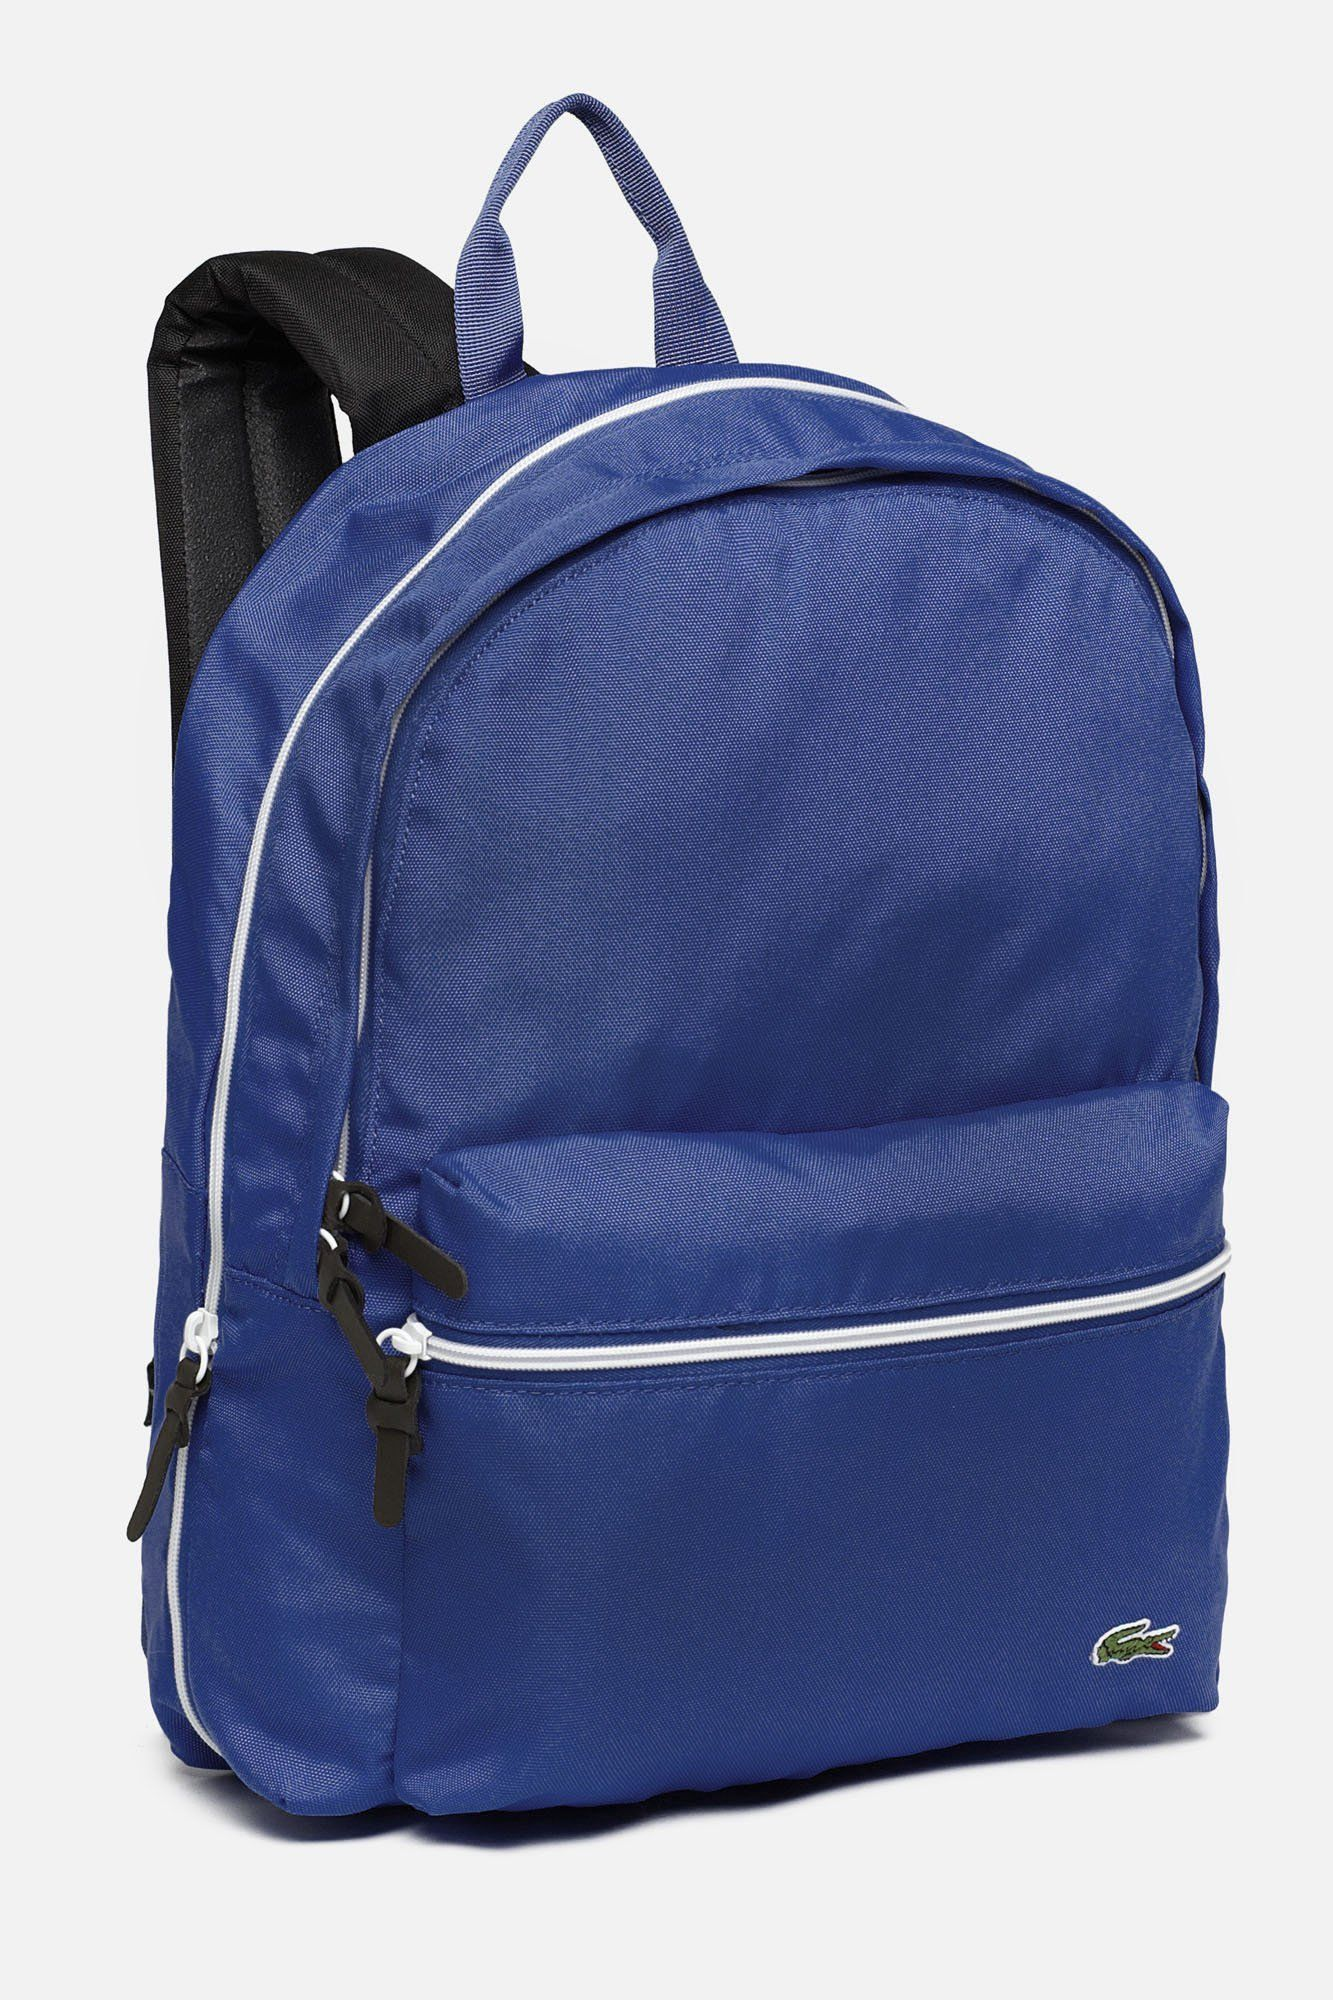 Ready For School Lacoste Small Backpack Small Backpack Backpacks Bags